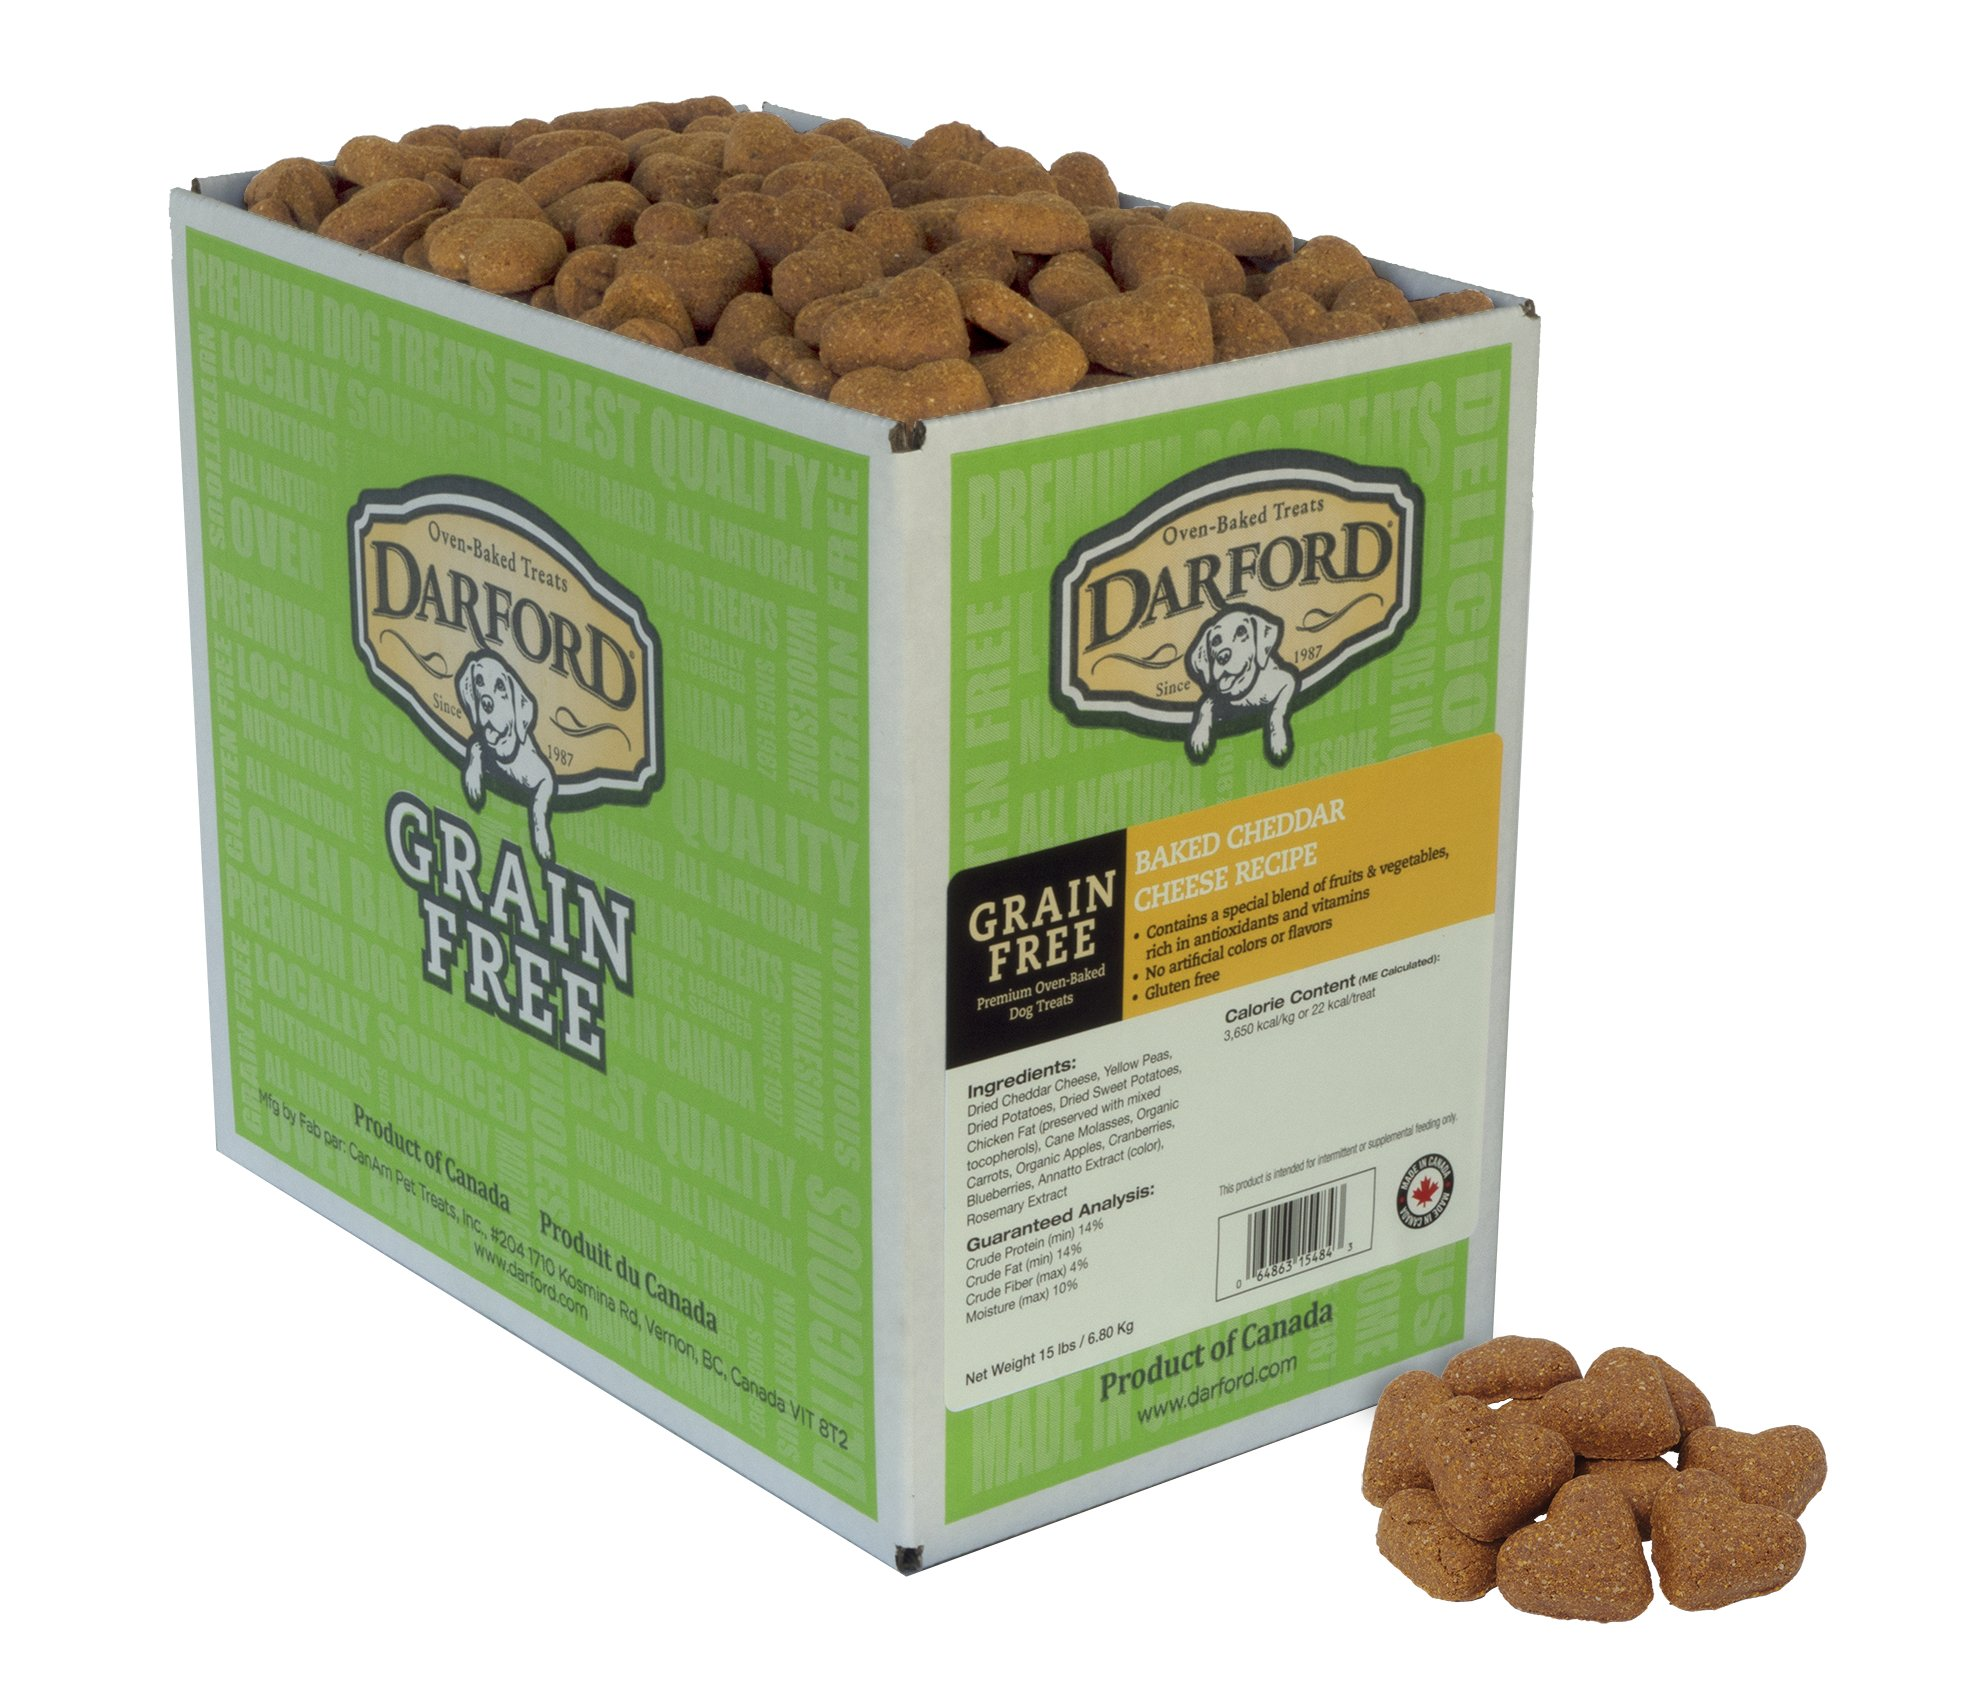 Darford Oven Baked Grain Free Cheddar Cheese Recipe Dog Treats, 15 Lb